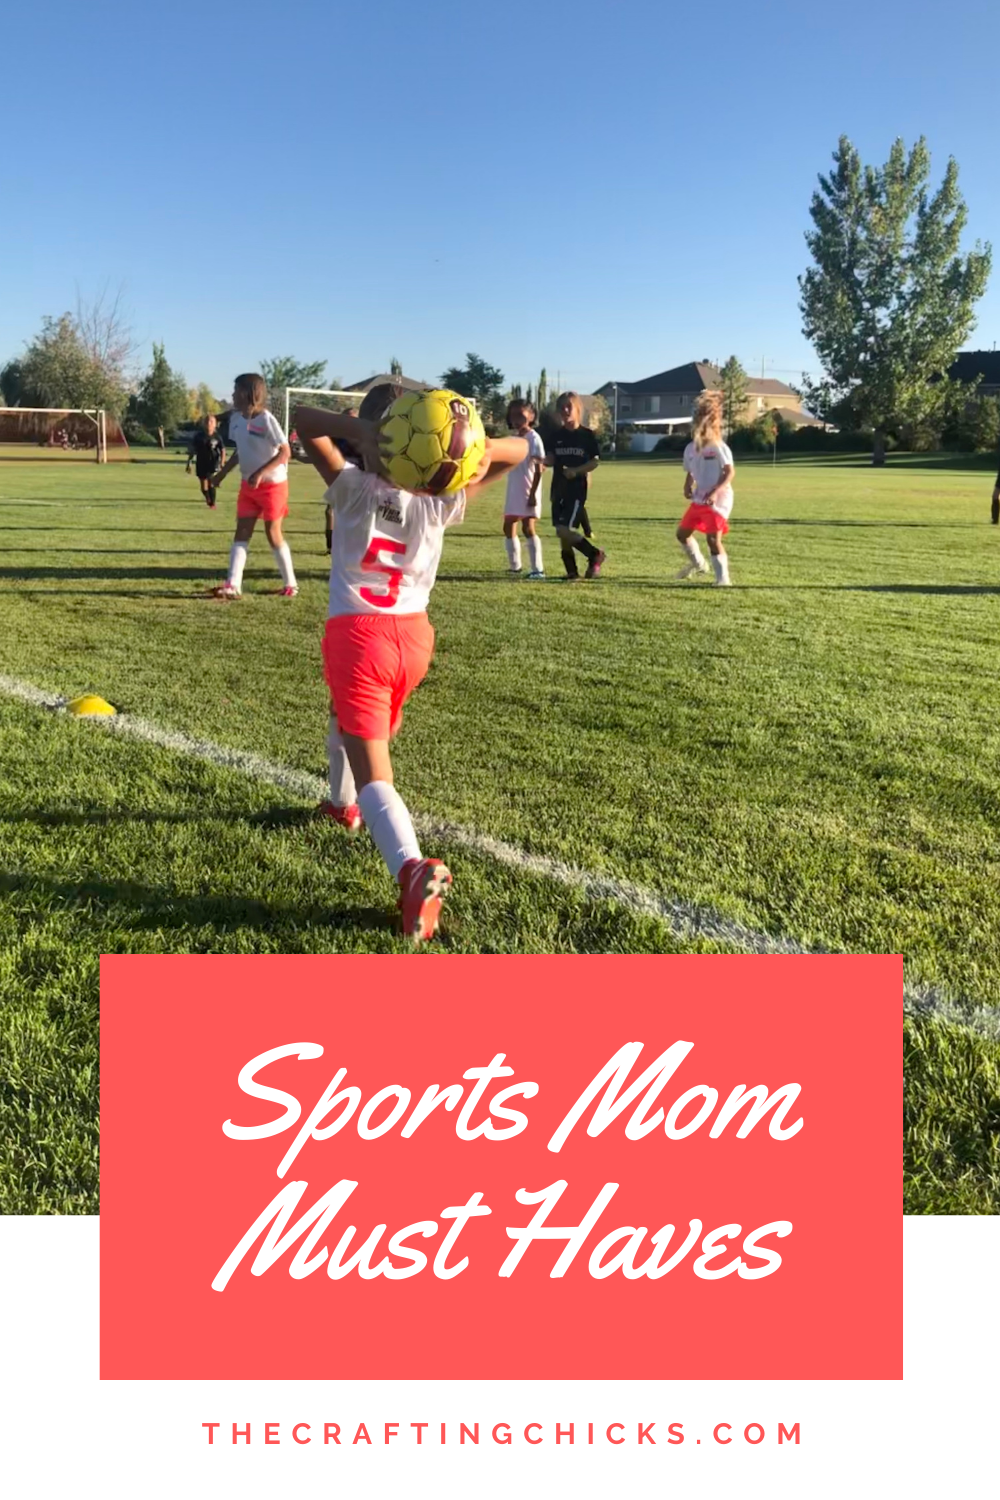 Girls out playing soccer in white shirts and bright coral shorts with title Sports Moms Must Haves